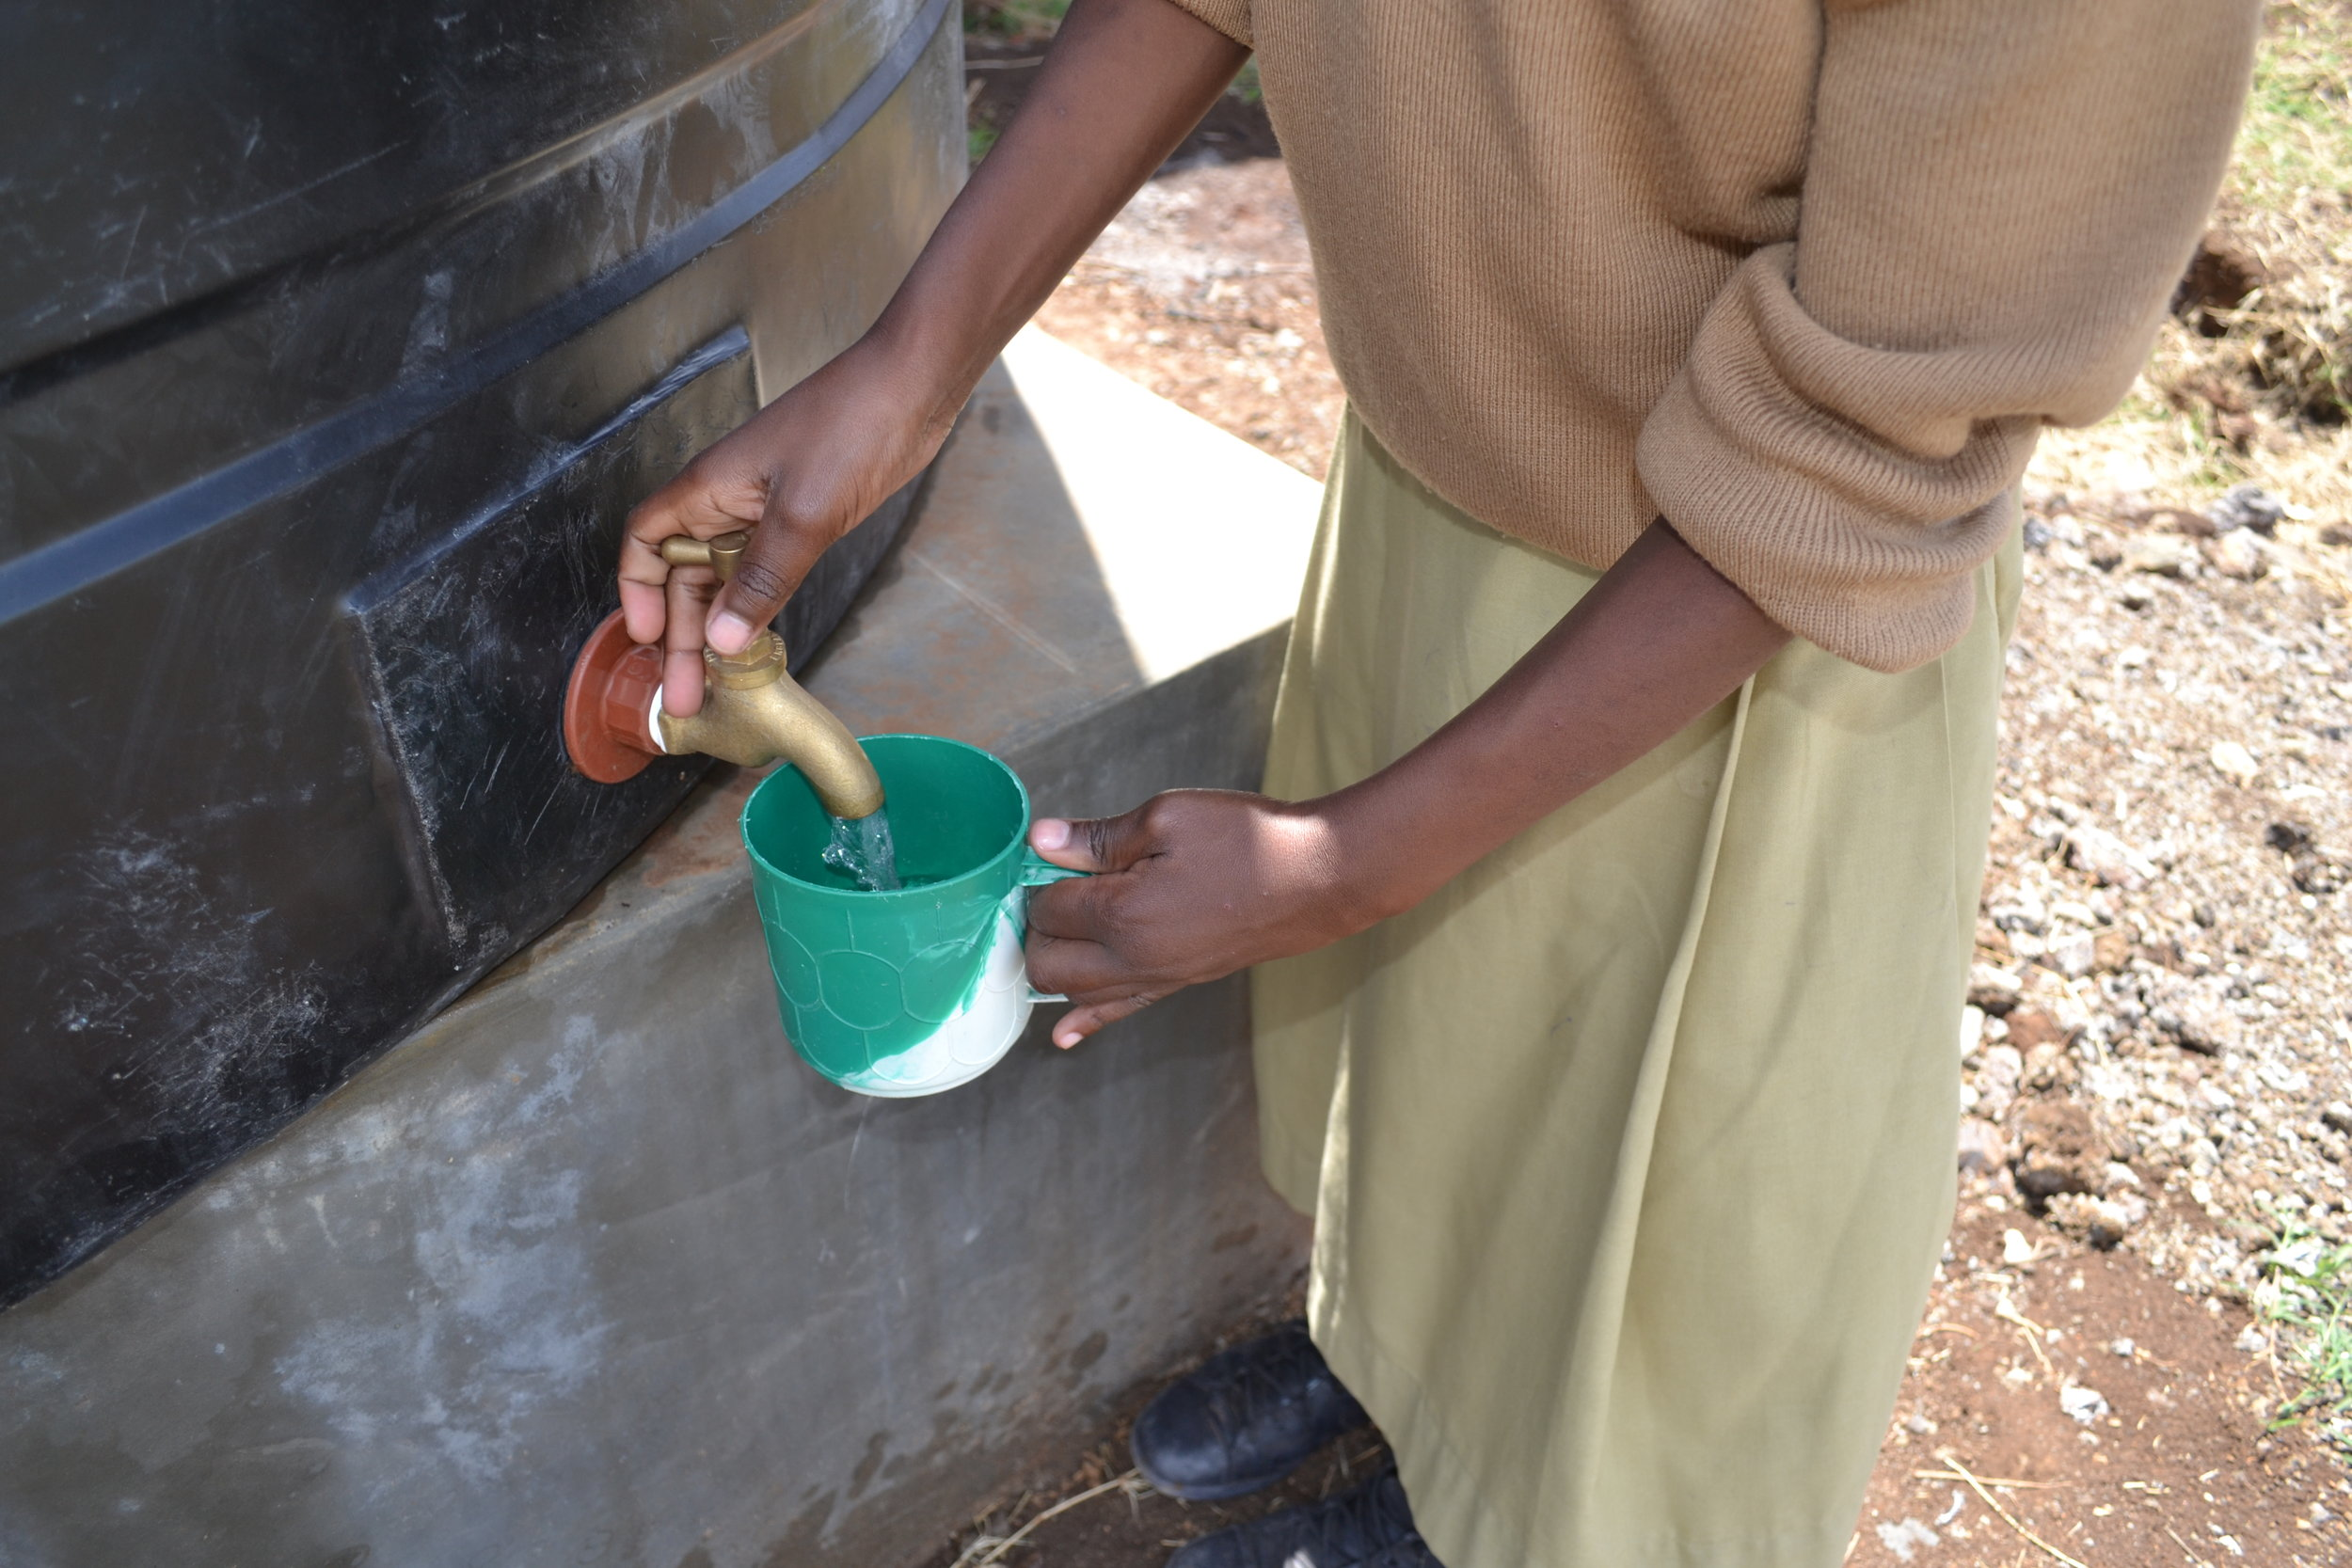 We're determined to bring more clean water to schools and communities!